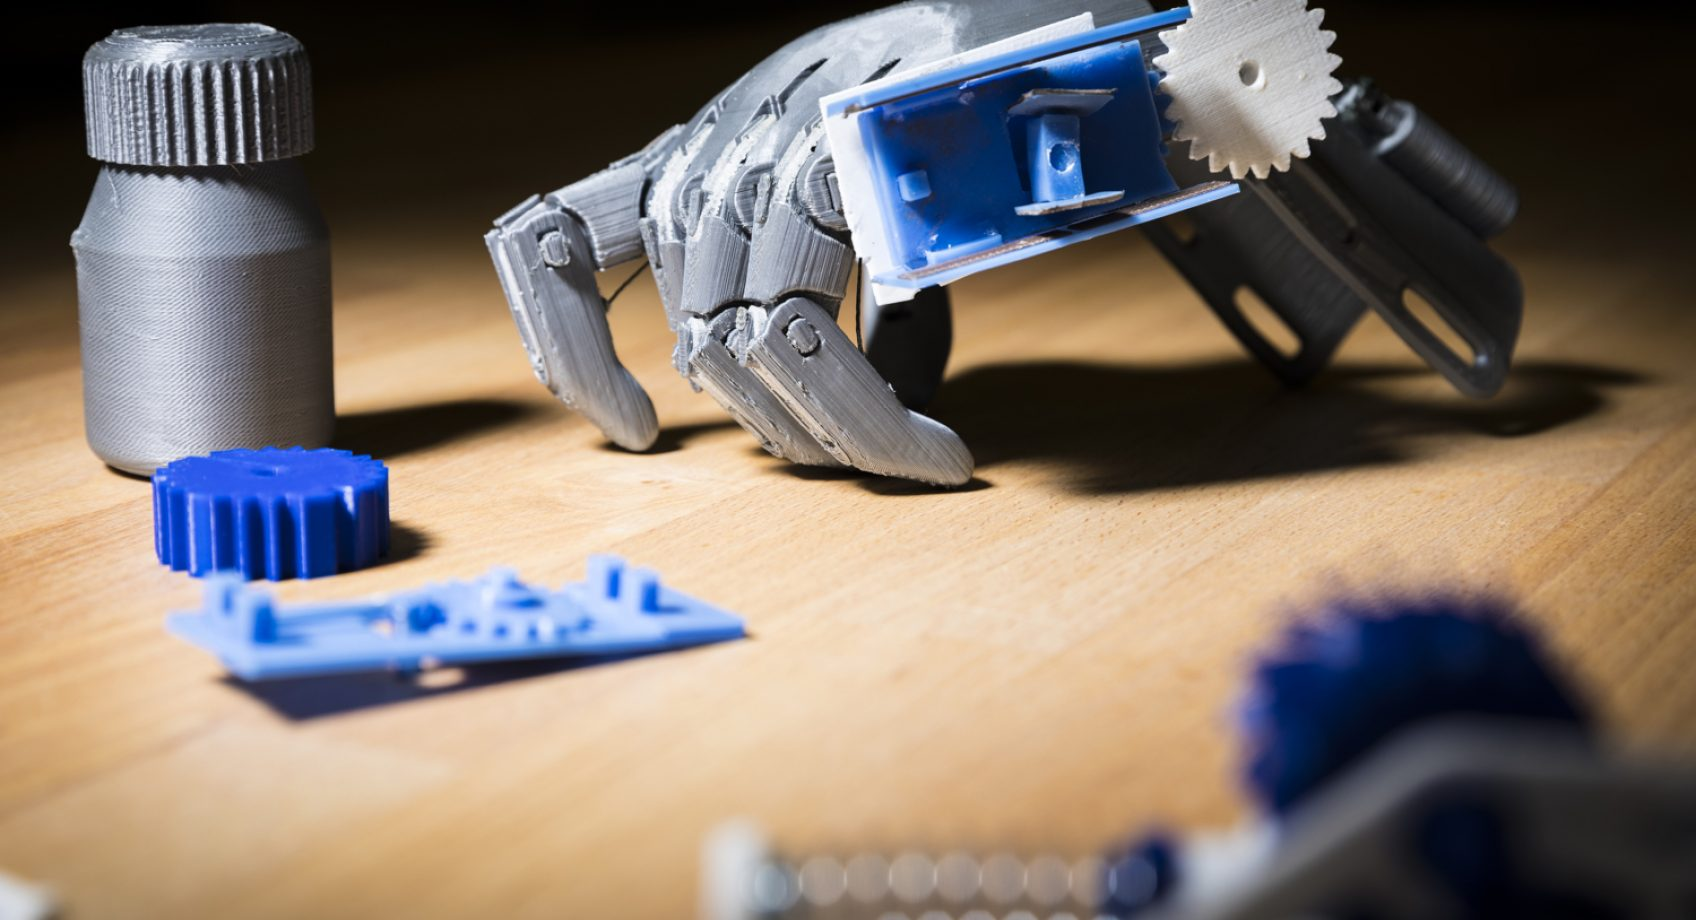 Researchers develop 3-D printed objects that can track and store how they are used Banner